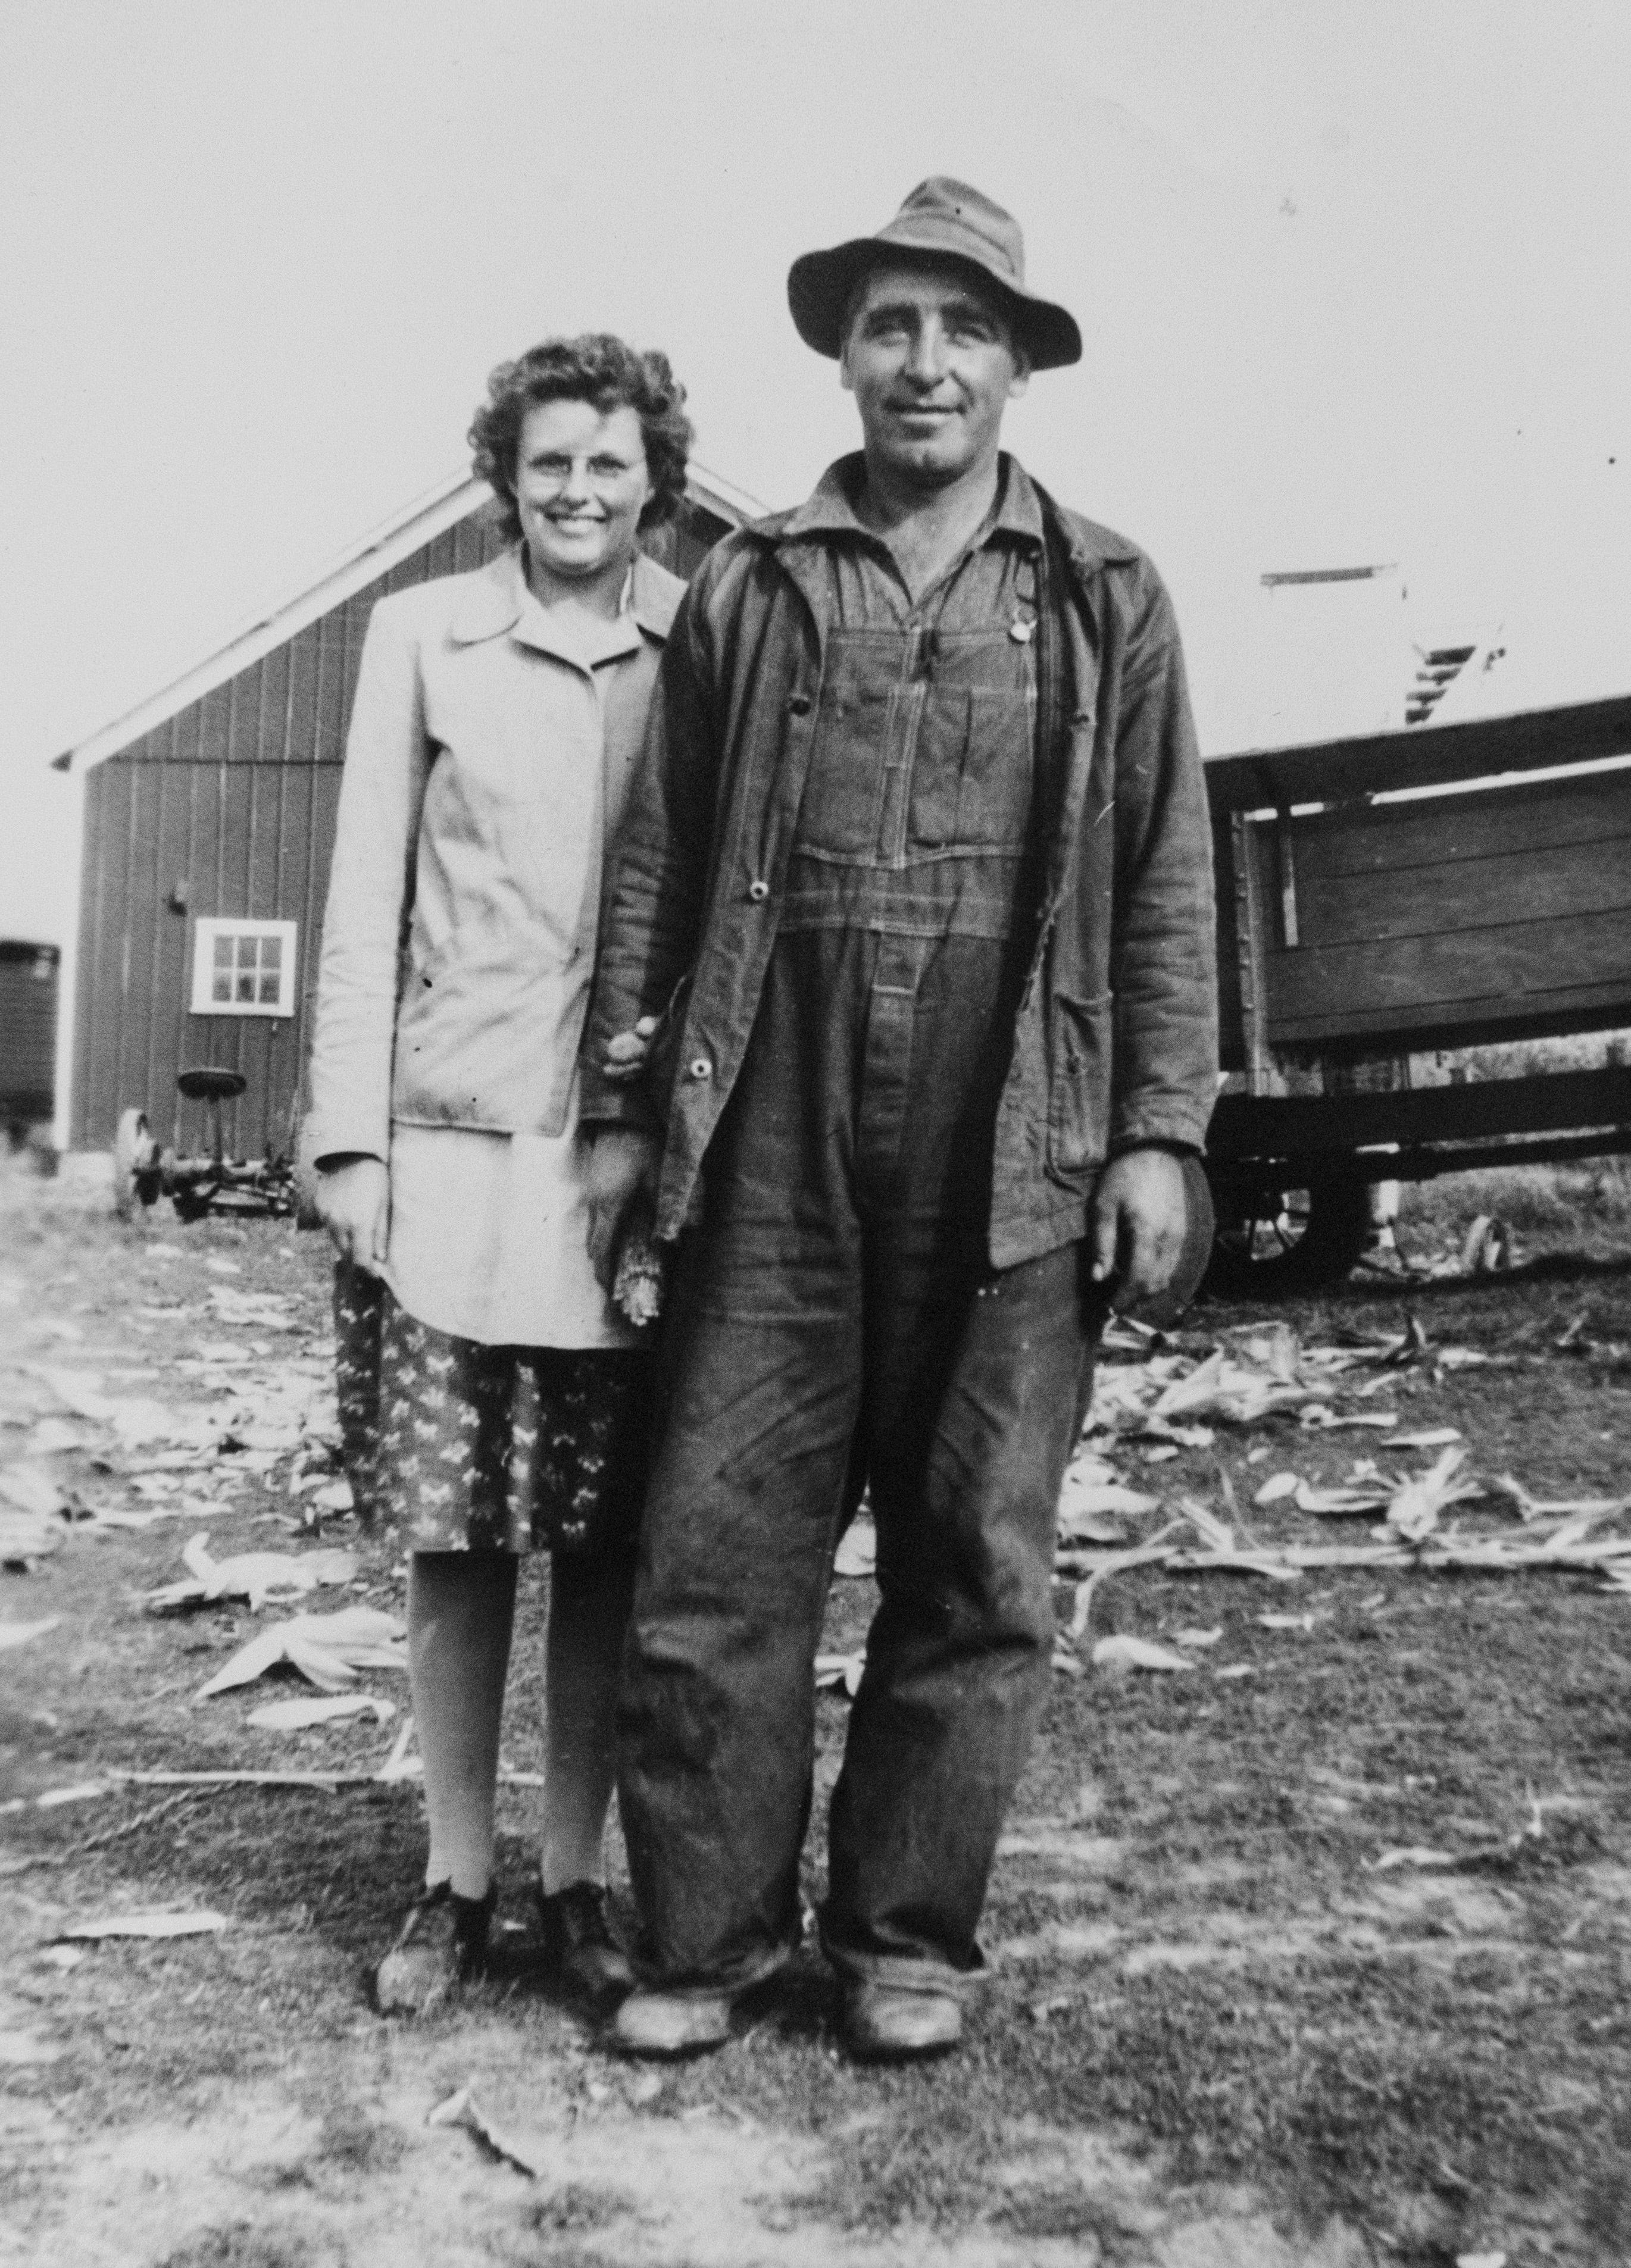 Fran and George Mehrkens, Todd Mehrkens' grandparents, are shown in this family photo from the early 1930s.